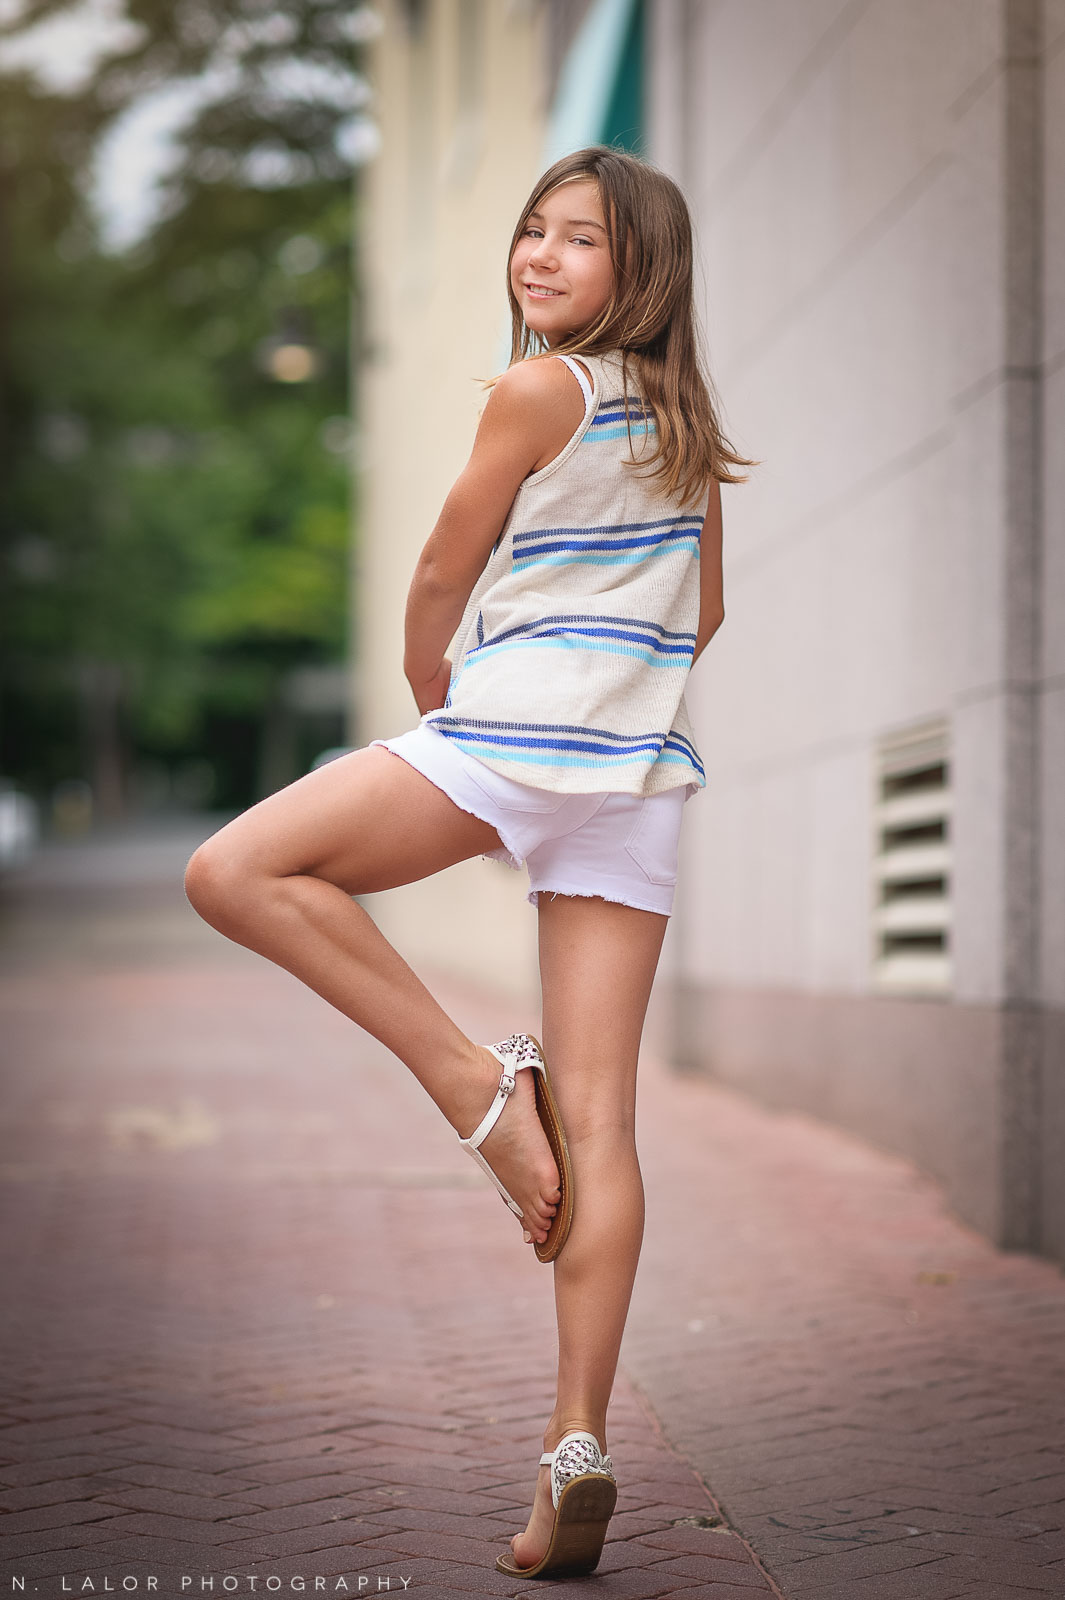 nlalor-photography-090314-fun-styled-tween-session-greenwich-avenue-connecticut-11.jpg